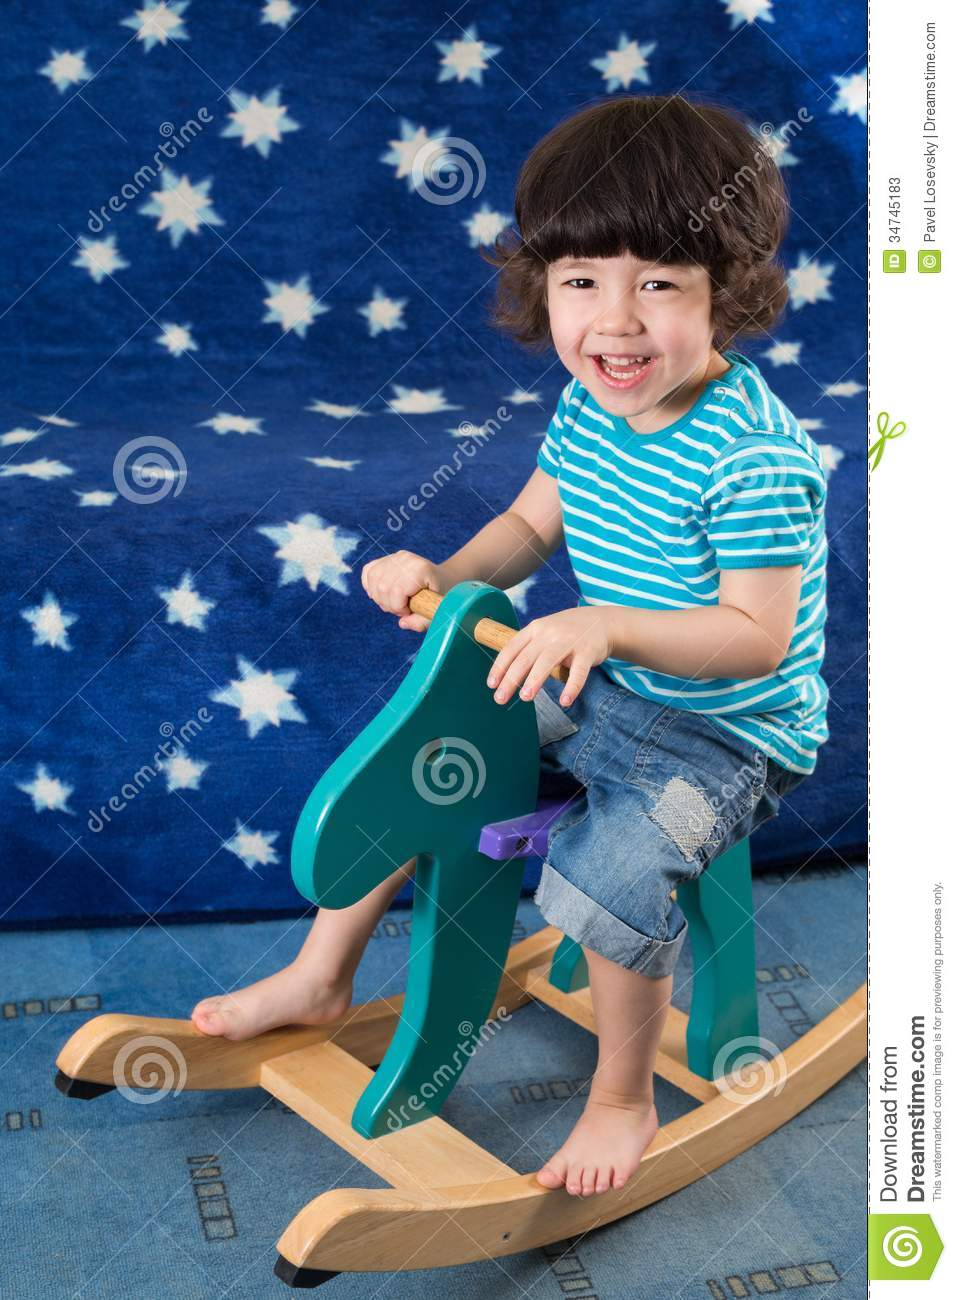 Unique Fun For Little Boys Toys : Smiling little boy have fun on a toy horse stock photos